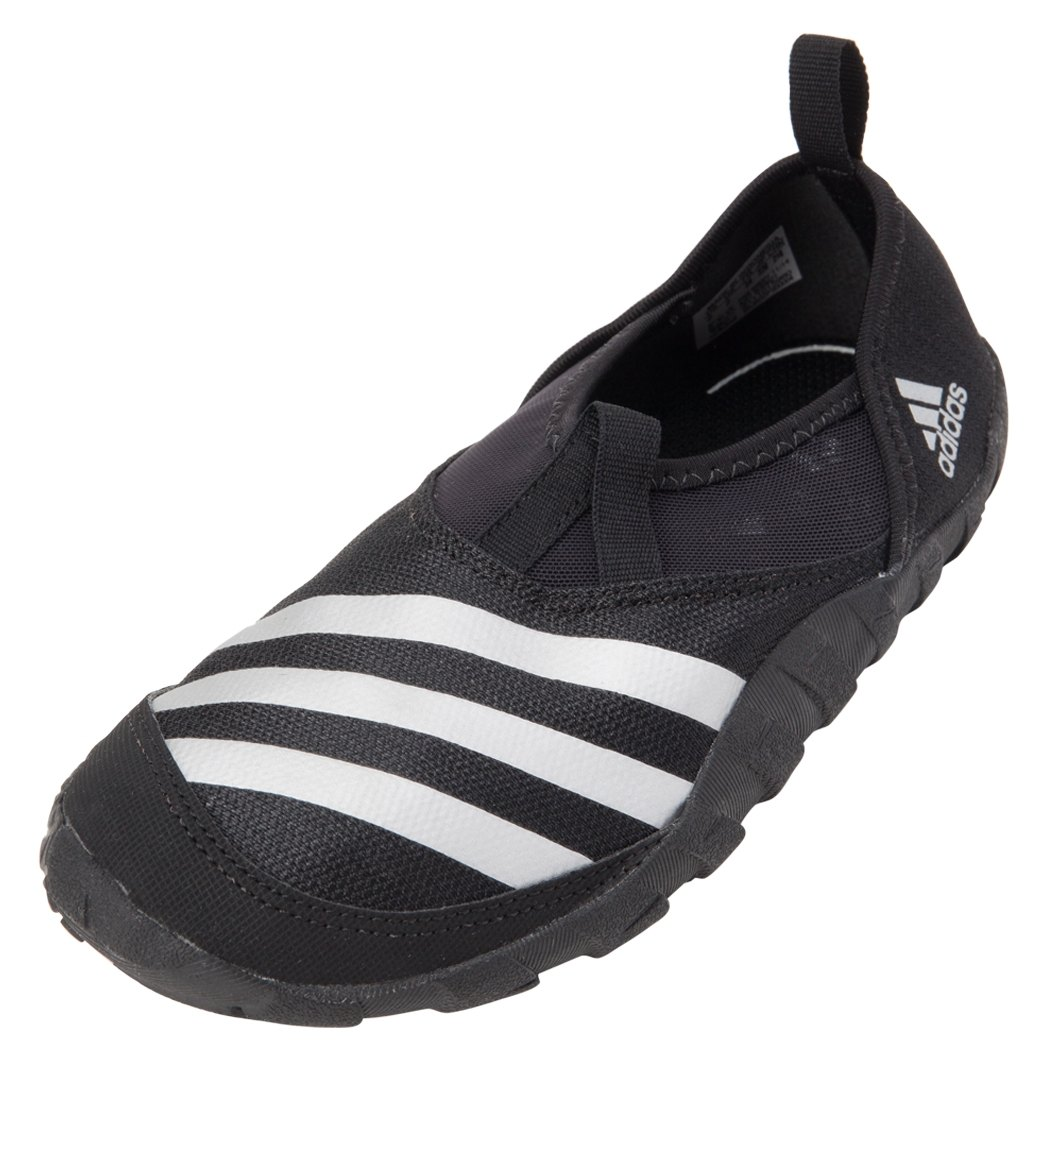 81c21bdcd6e8 Buy cheap adidas kids  Up to OFF73% Discounts